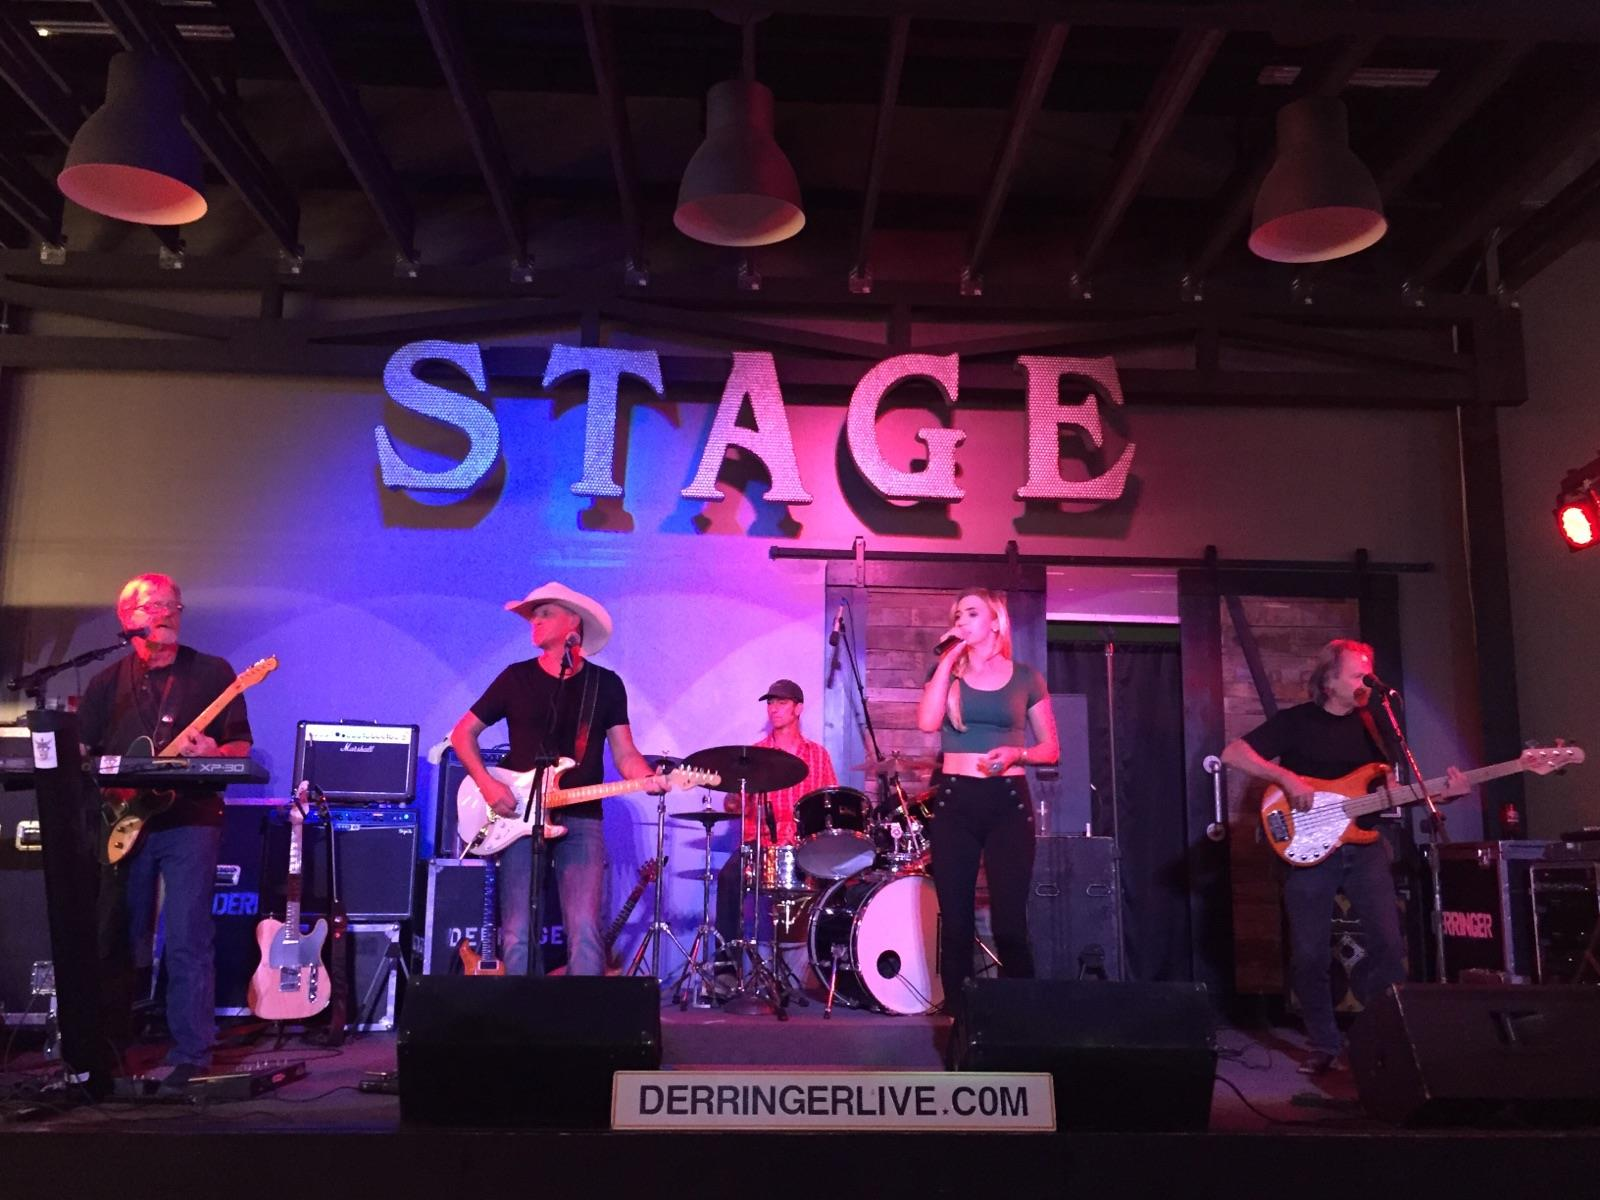 Come get western with the Band Derringer who are quickly becoming the can't miss night of Country Music in Grand Junction!